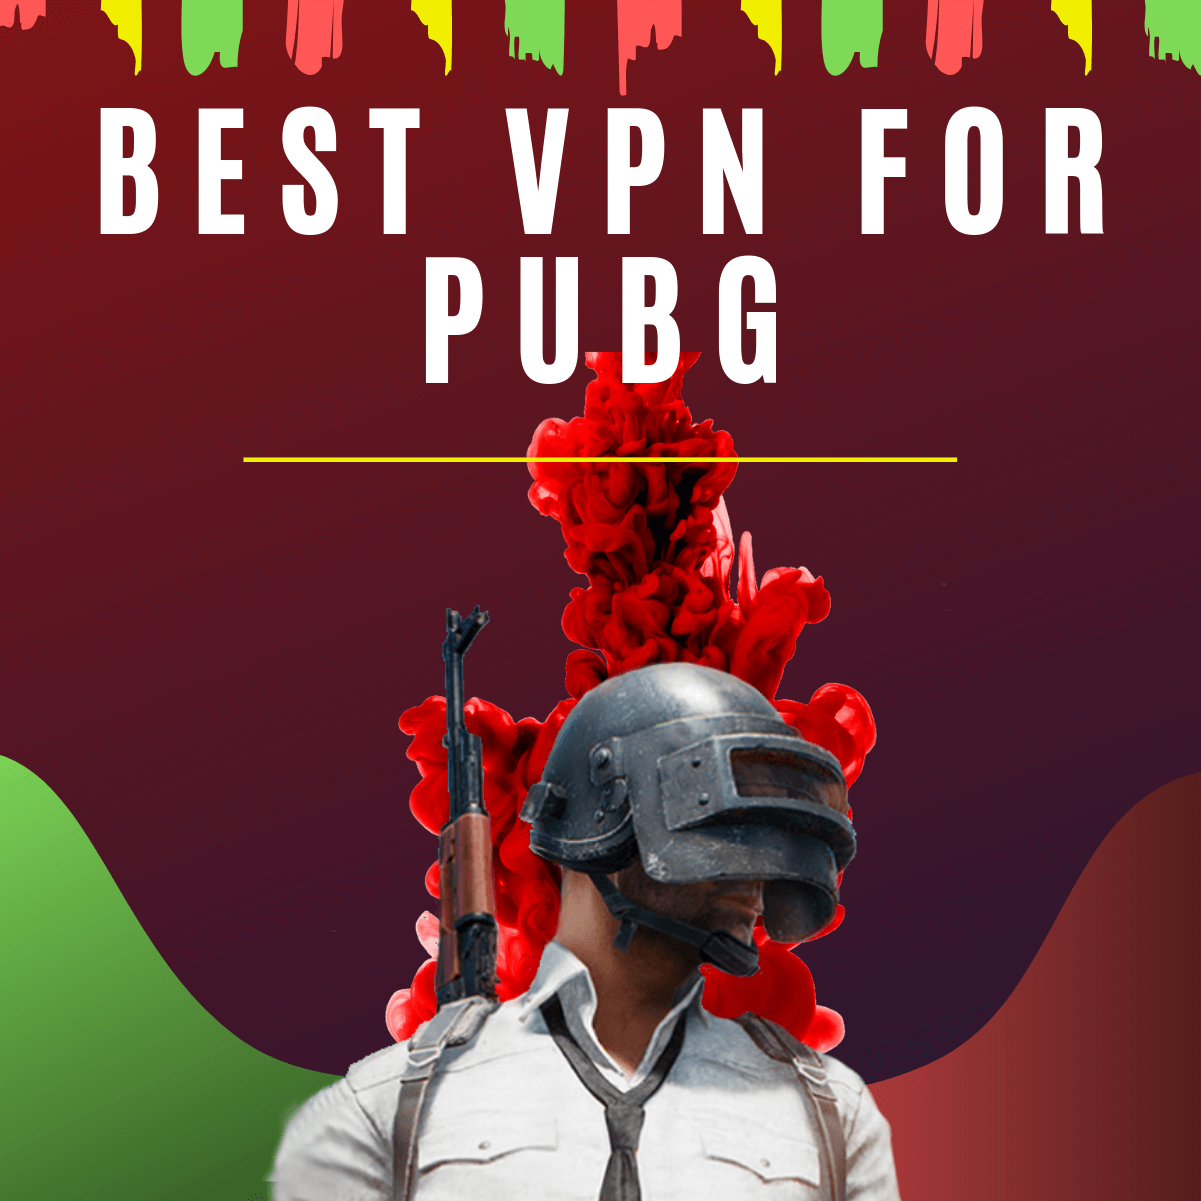 5 Best VPN for Pubg Mobile 2019 - Low pings and lag free